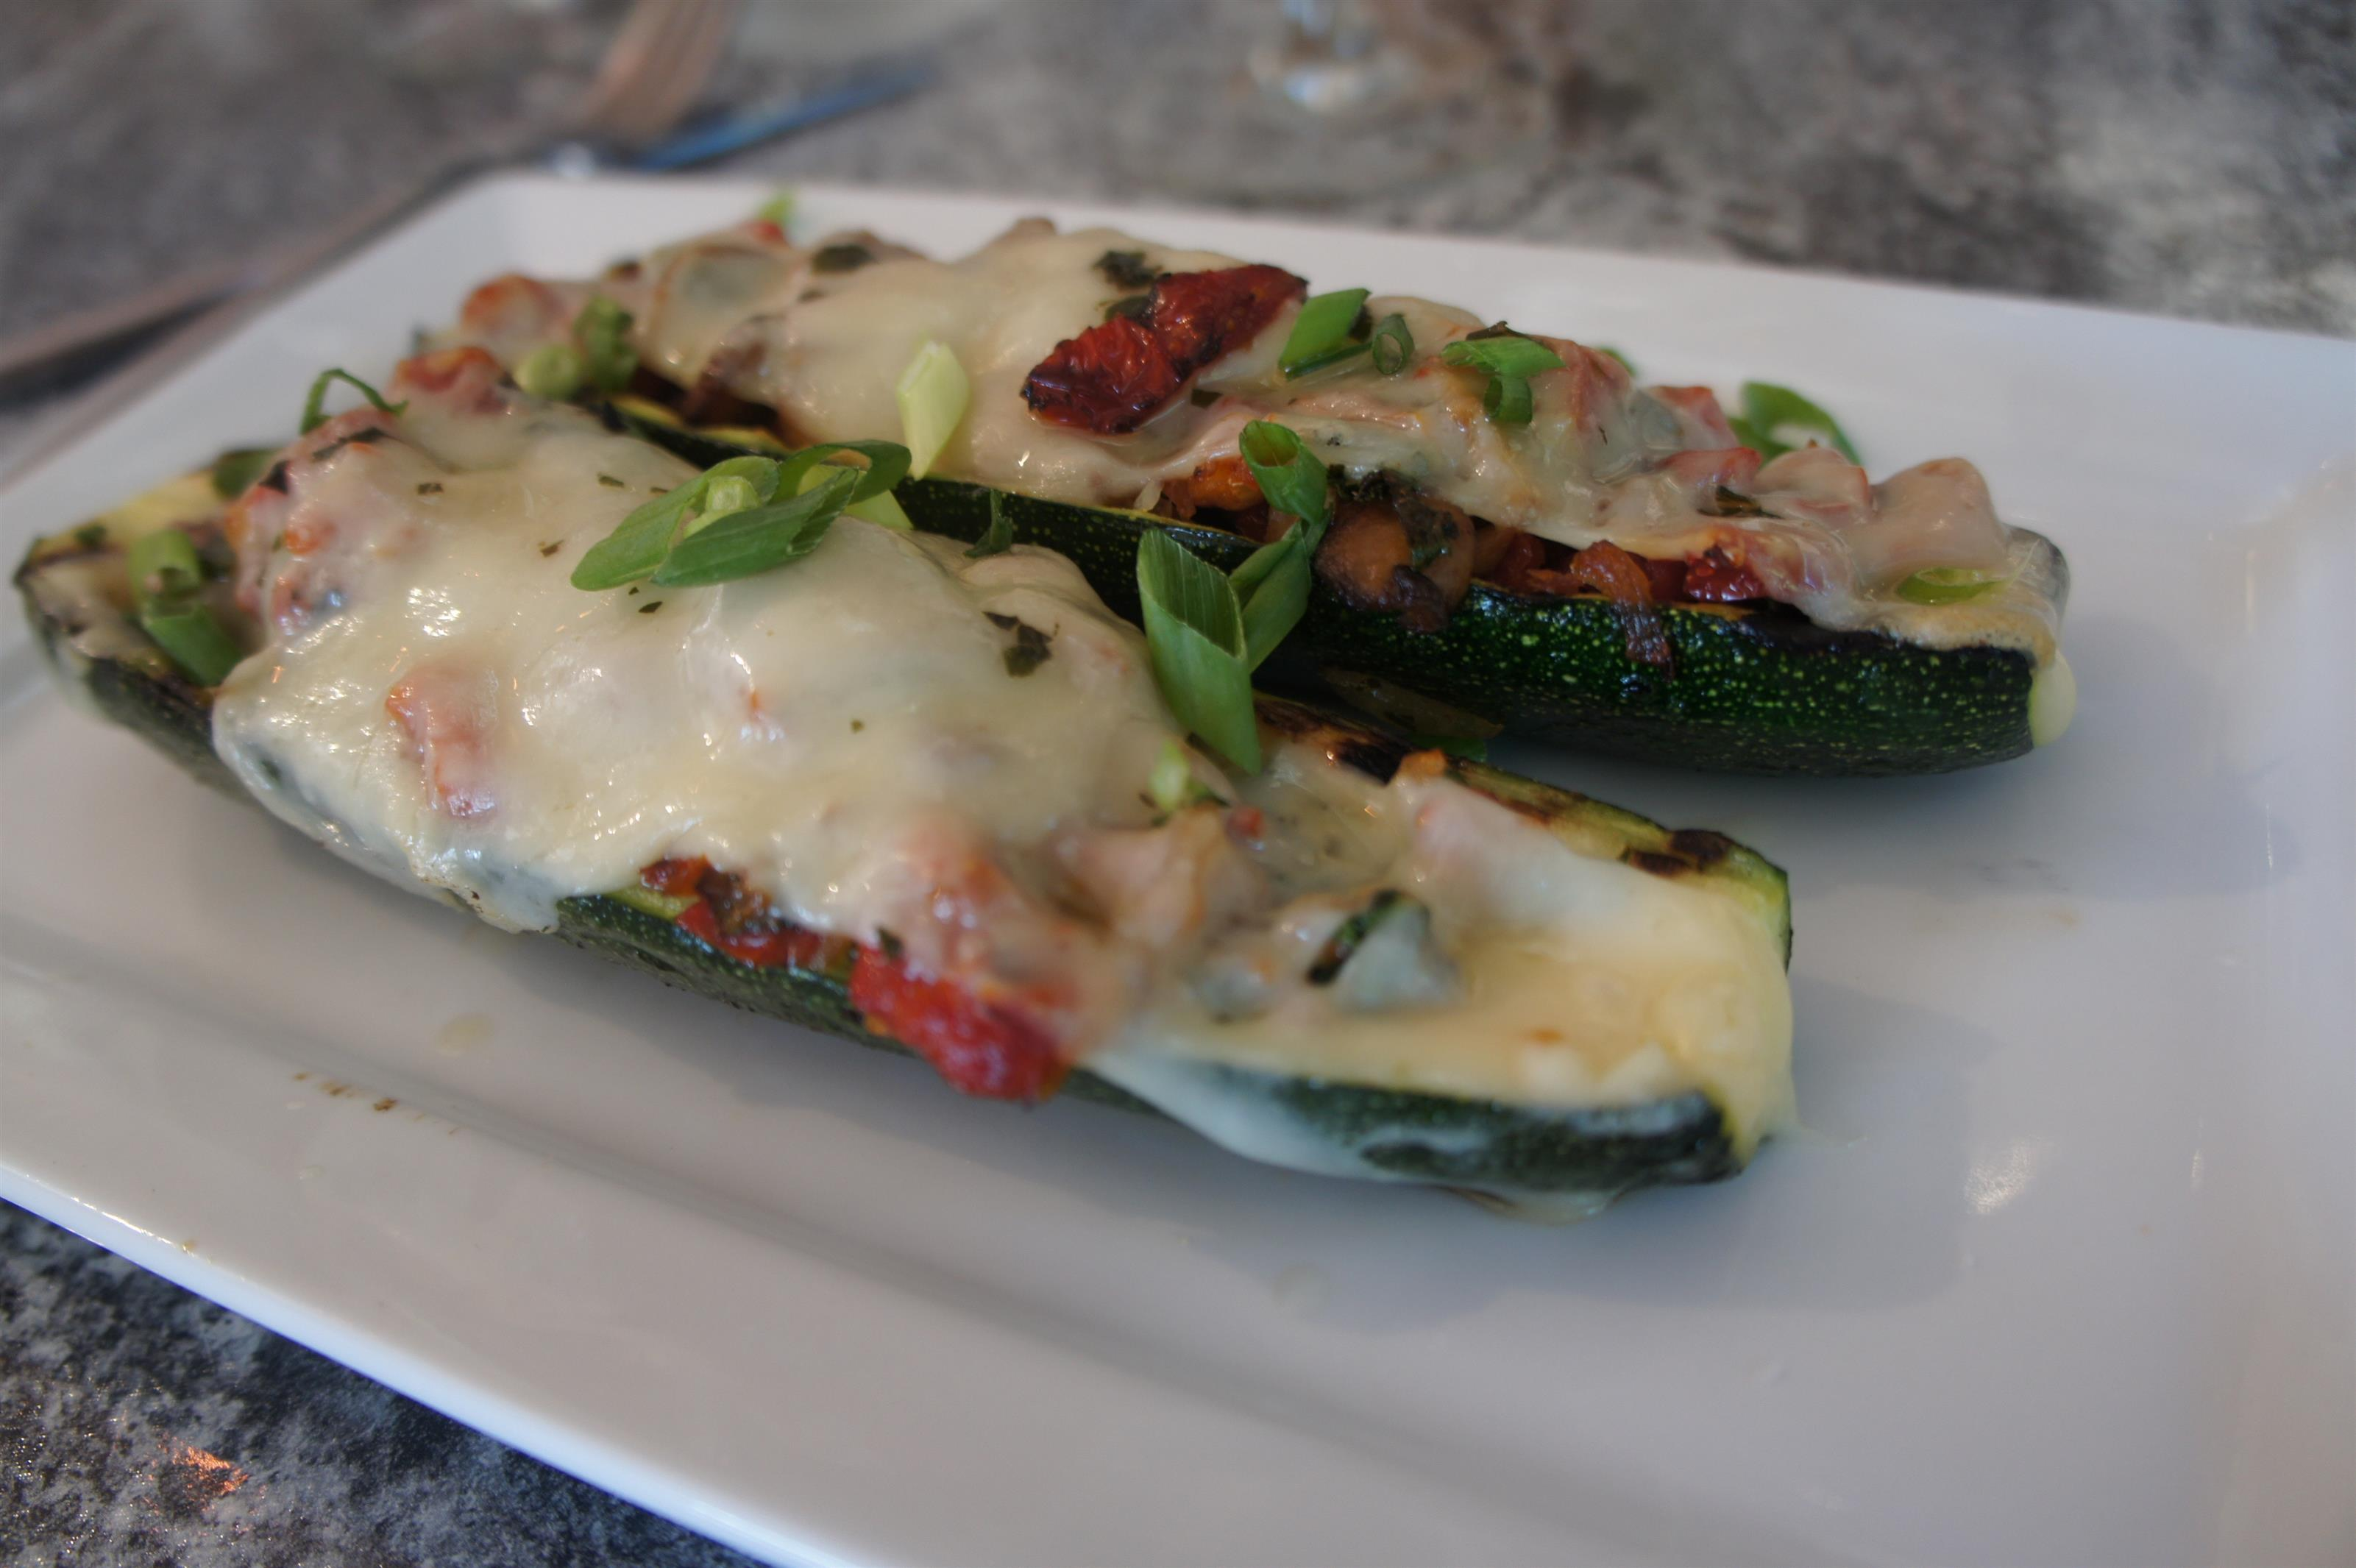 Eggplant stuffed boats with melted cheese on top served in a platter